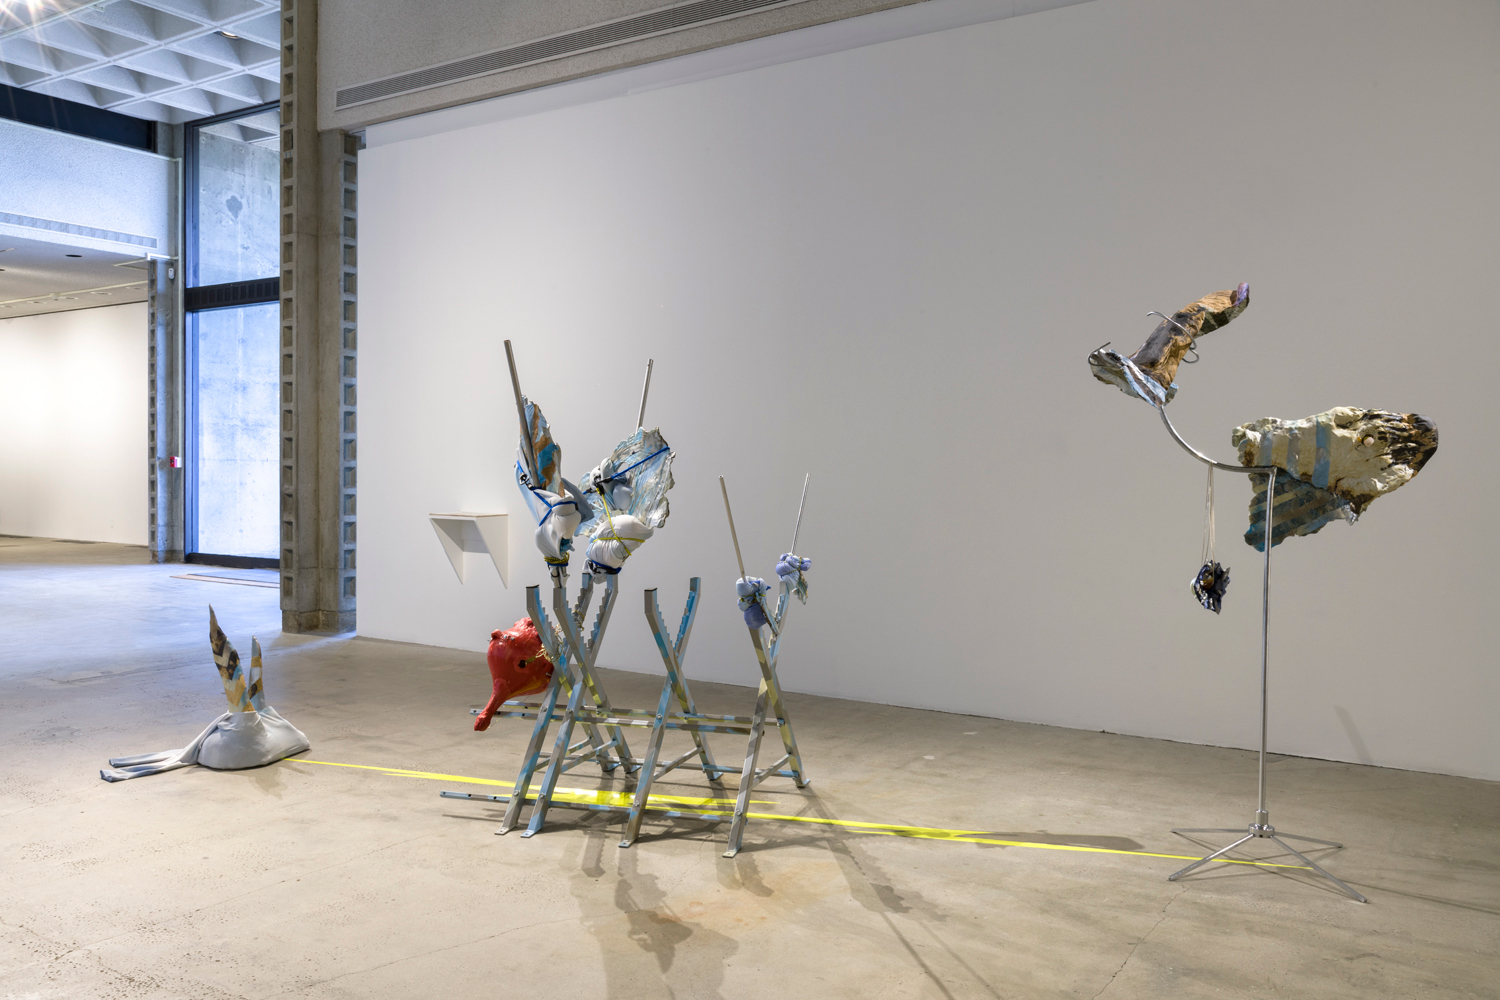 This artwork by the artist Olga Koumoundouros is a large sculpture depicting a flying fish. The sculpture is separated into three parts: one part depicts the tail of a flying fish made out of ceramic and with sky patterned leggings over it. The tail points up to the ceiling. The second part depicts the torso of a flying fish made out of four grey saw horses with painted blue stripes. There is also a red ceramic sculpture attached to the saw horses depicting the genitalia of the fish, as well as another sculpture depicting the